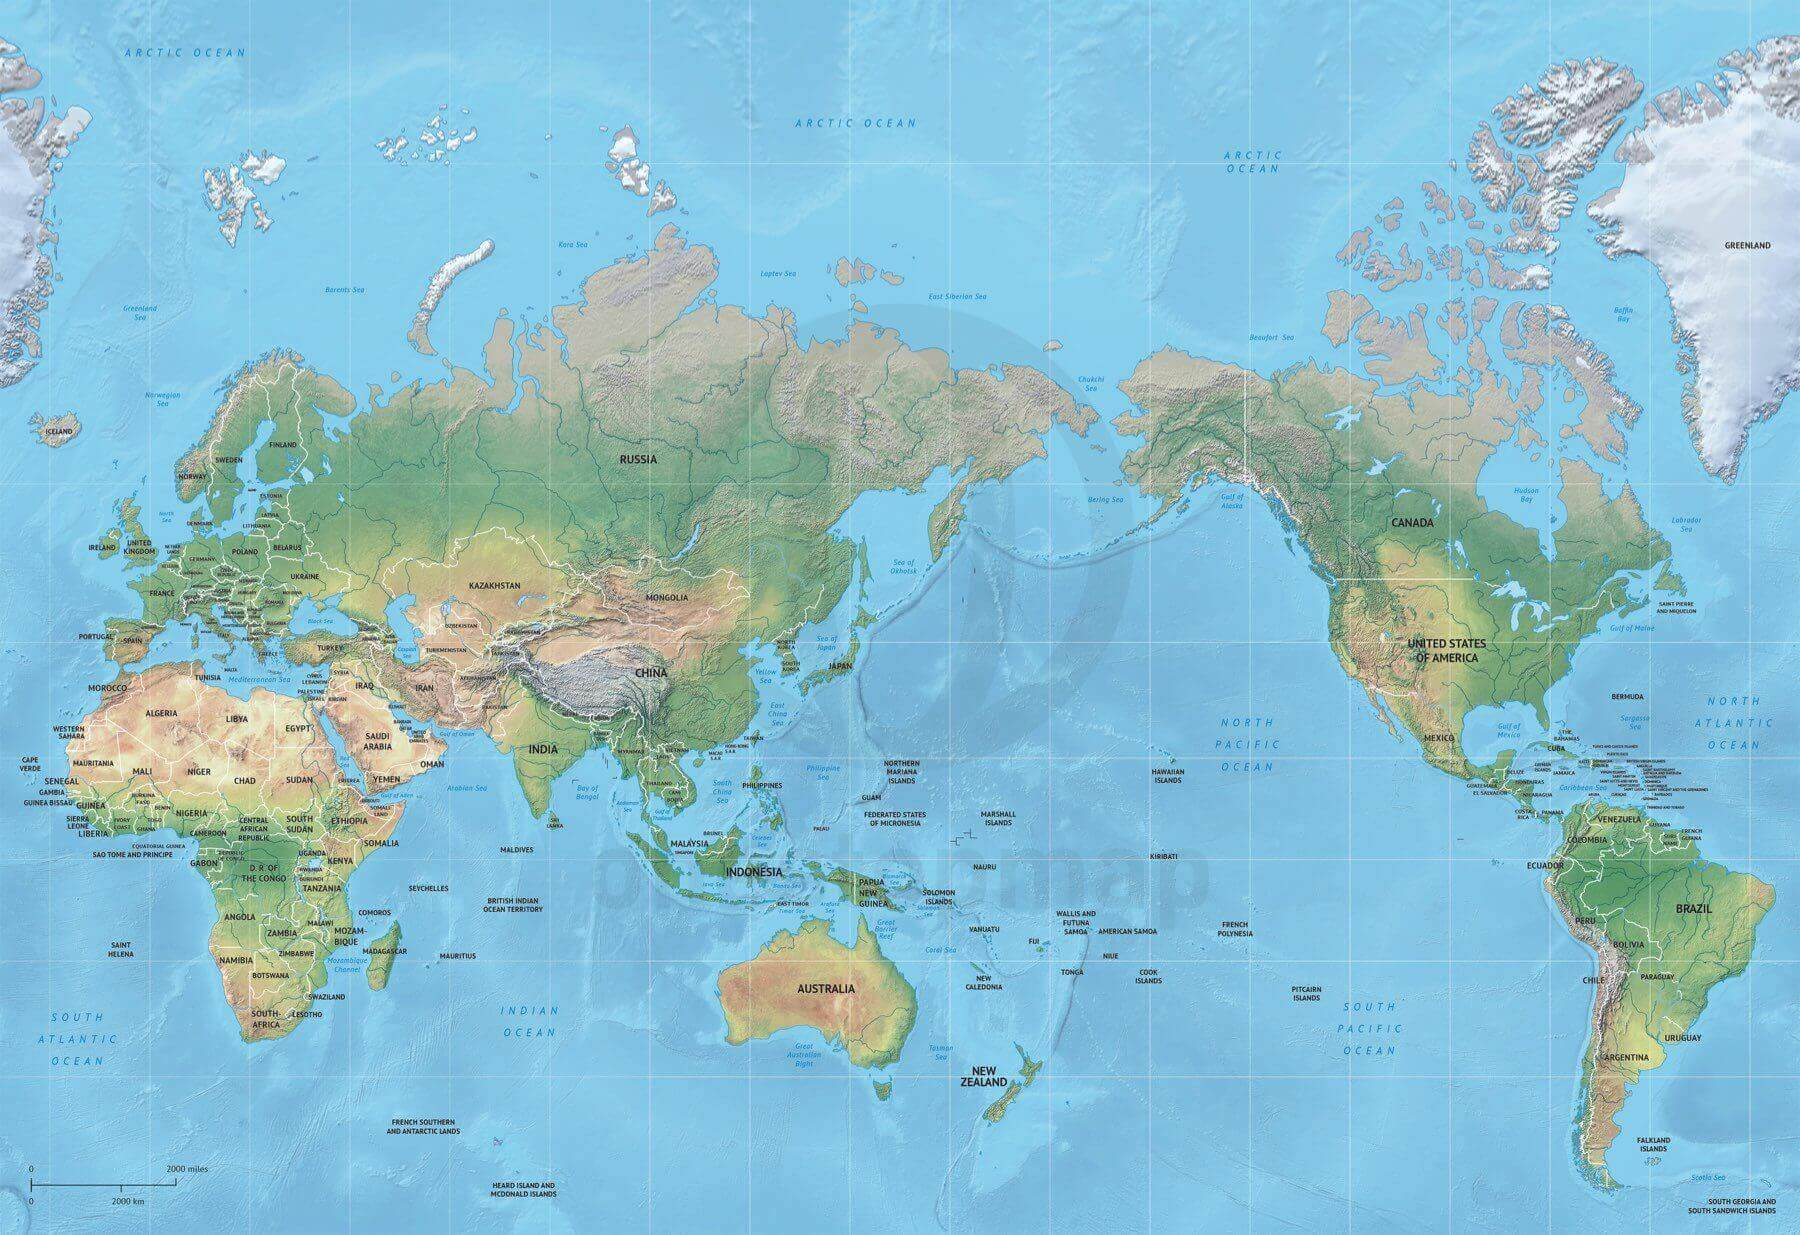 Australia In World Map.Map Of World Political Shaded Relief Mercator Asia Australia Centered